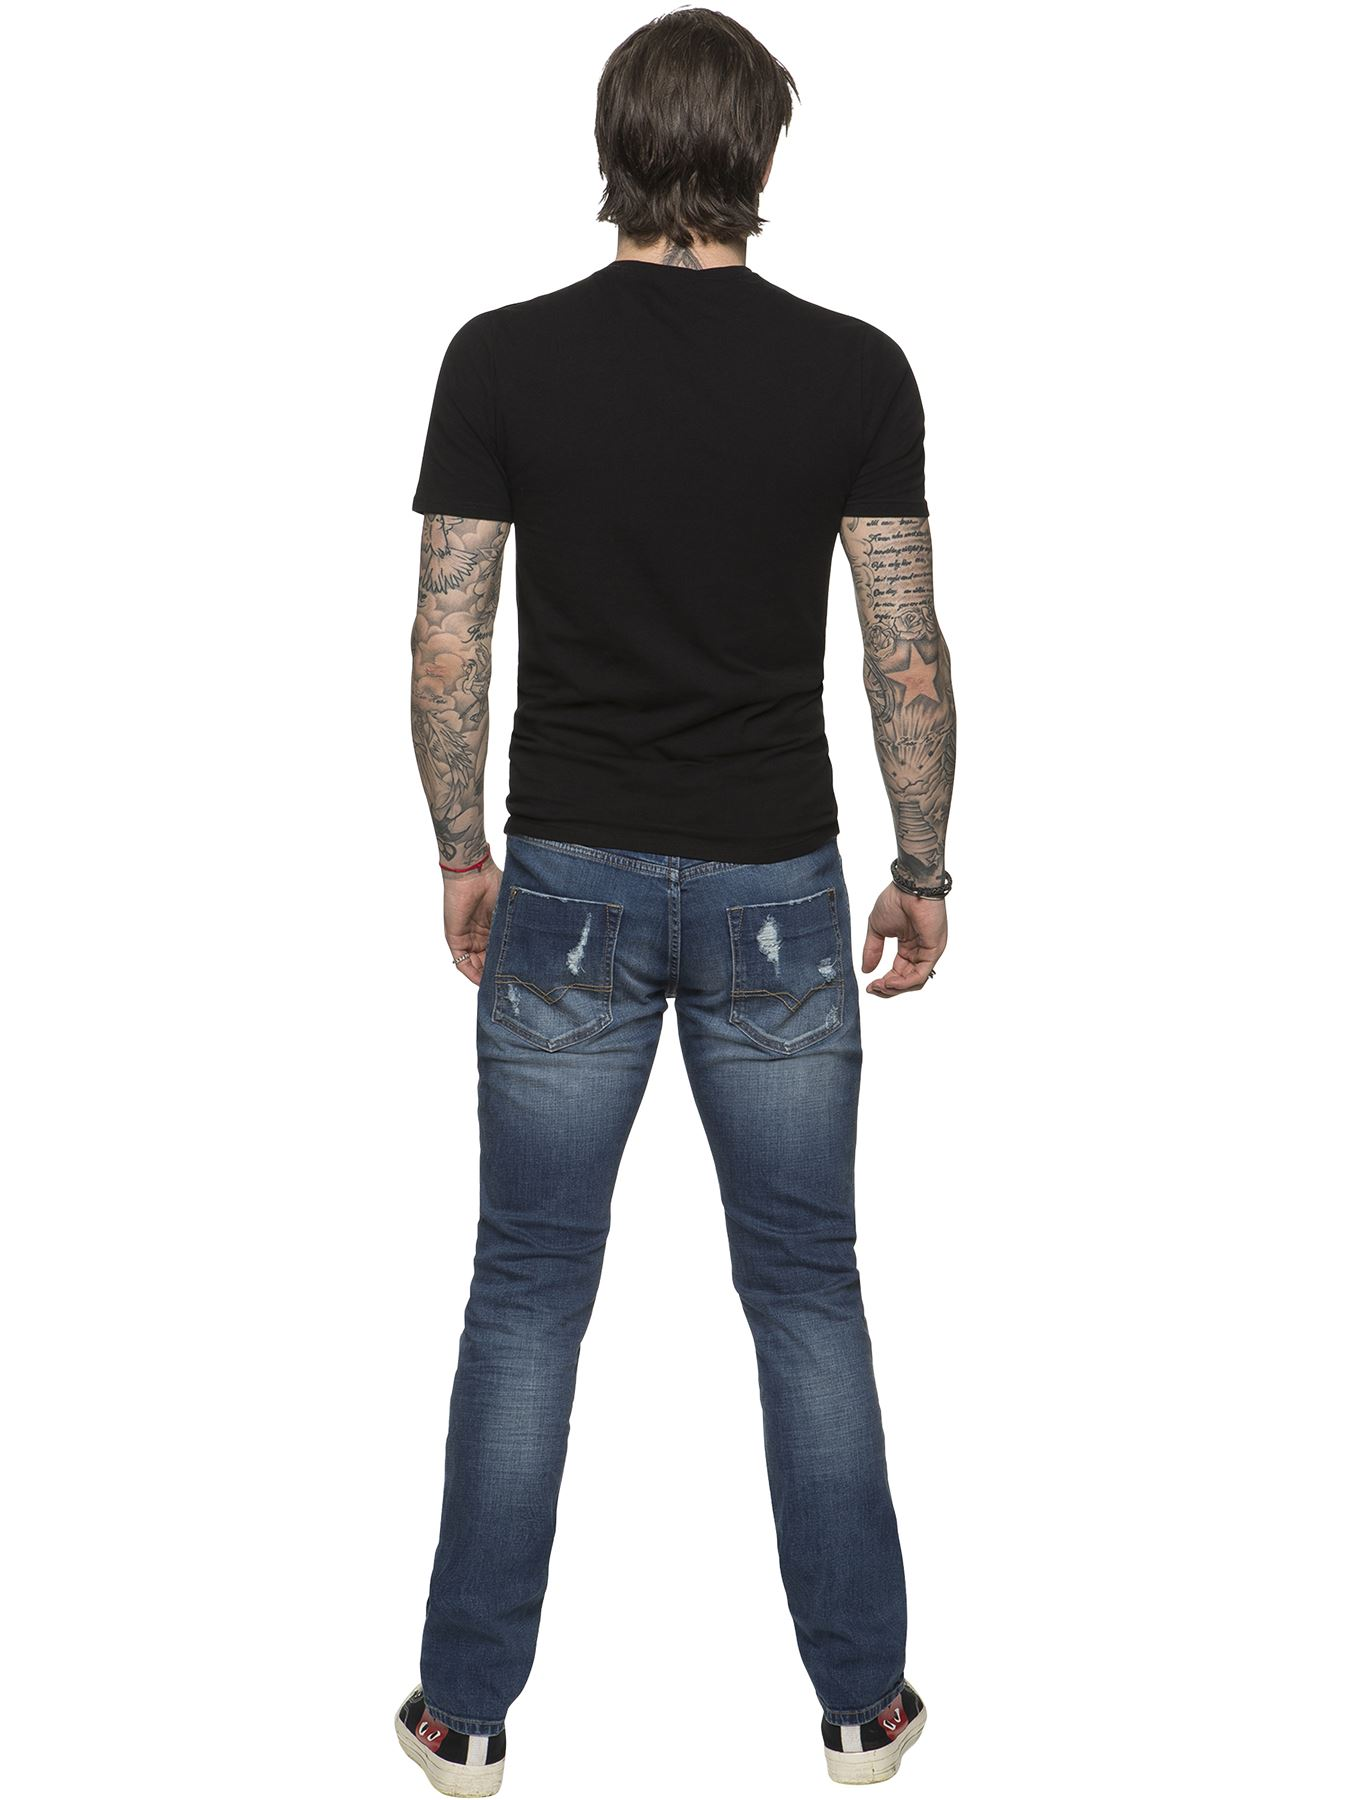 ETO-Designer-Mens-Ripped-Blue-Jeans-Distressed-Denim-Tapered-Fit-Trousers-Pants thumbnail 5